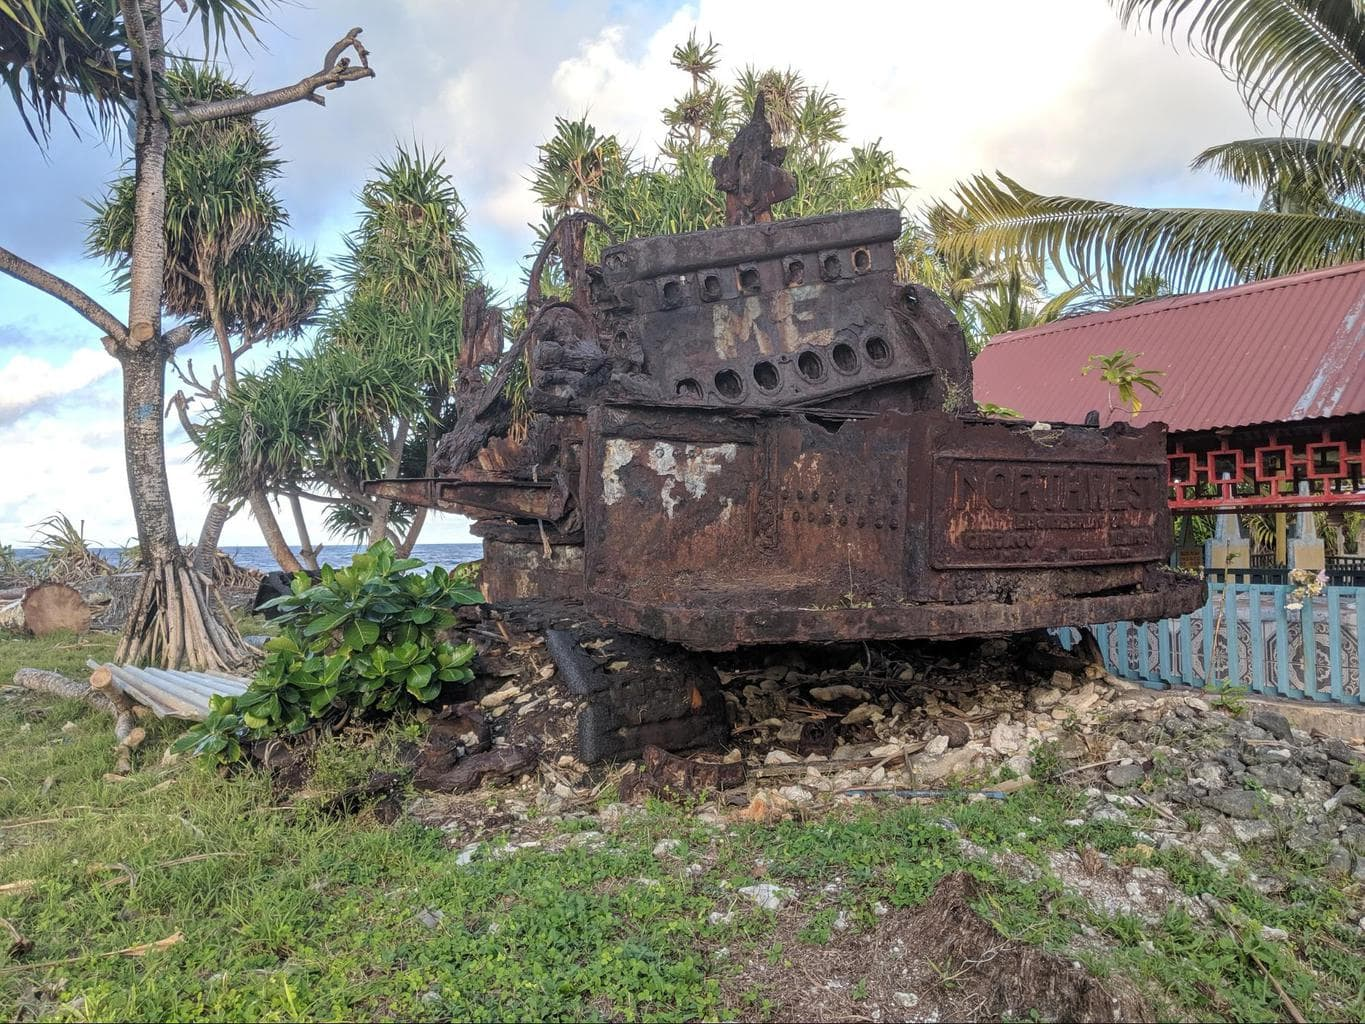 Wreck from WWII in Tuvalu